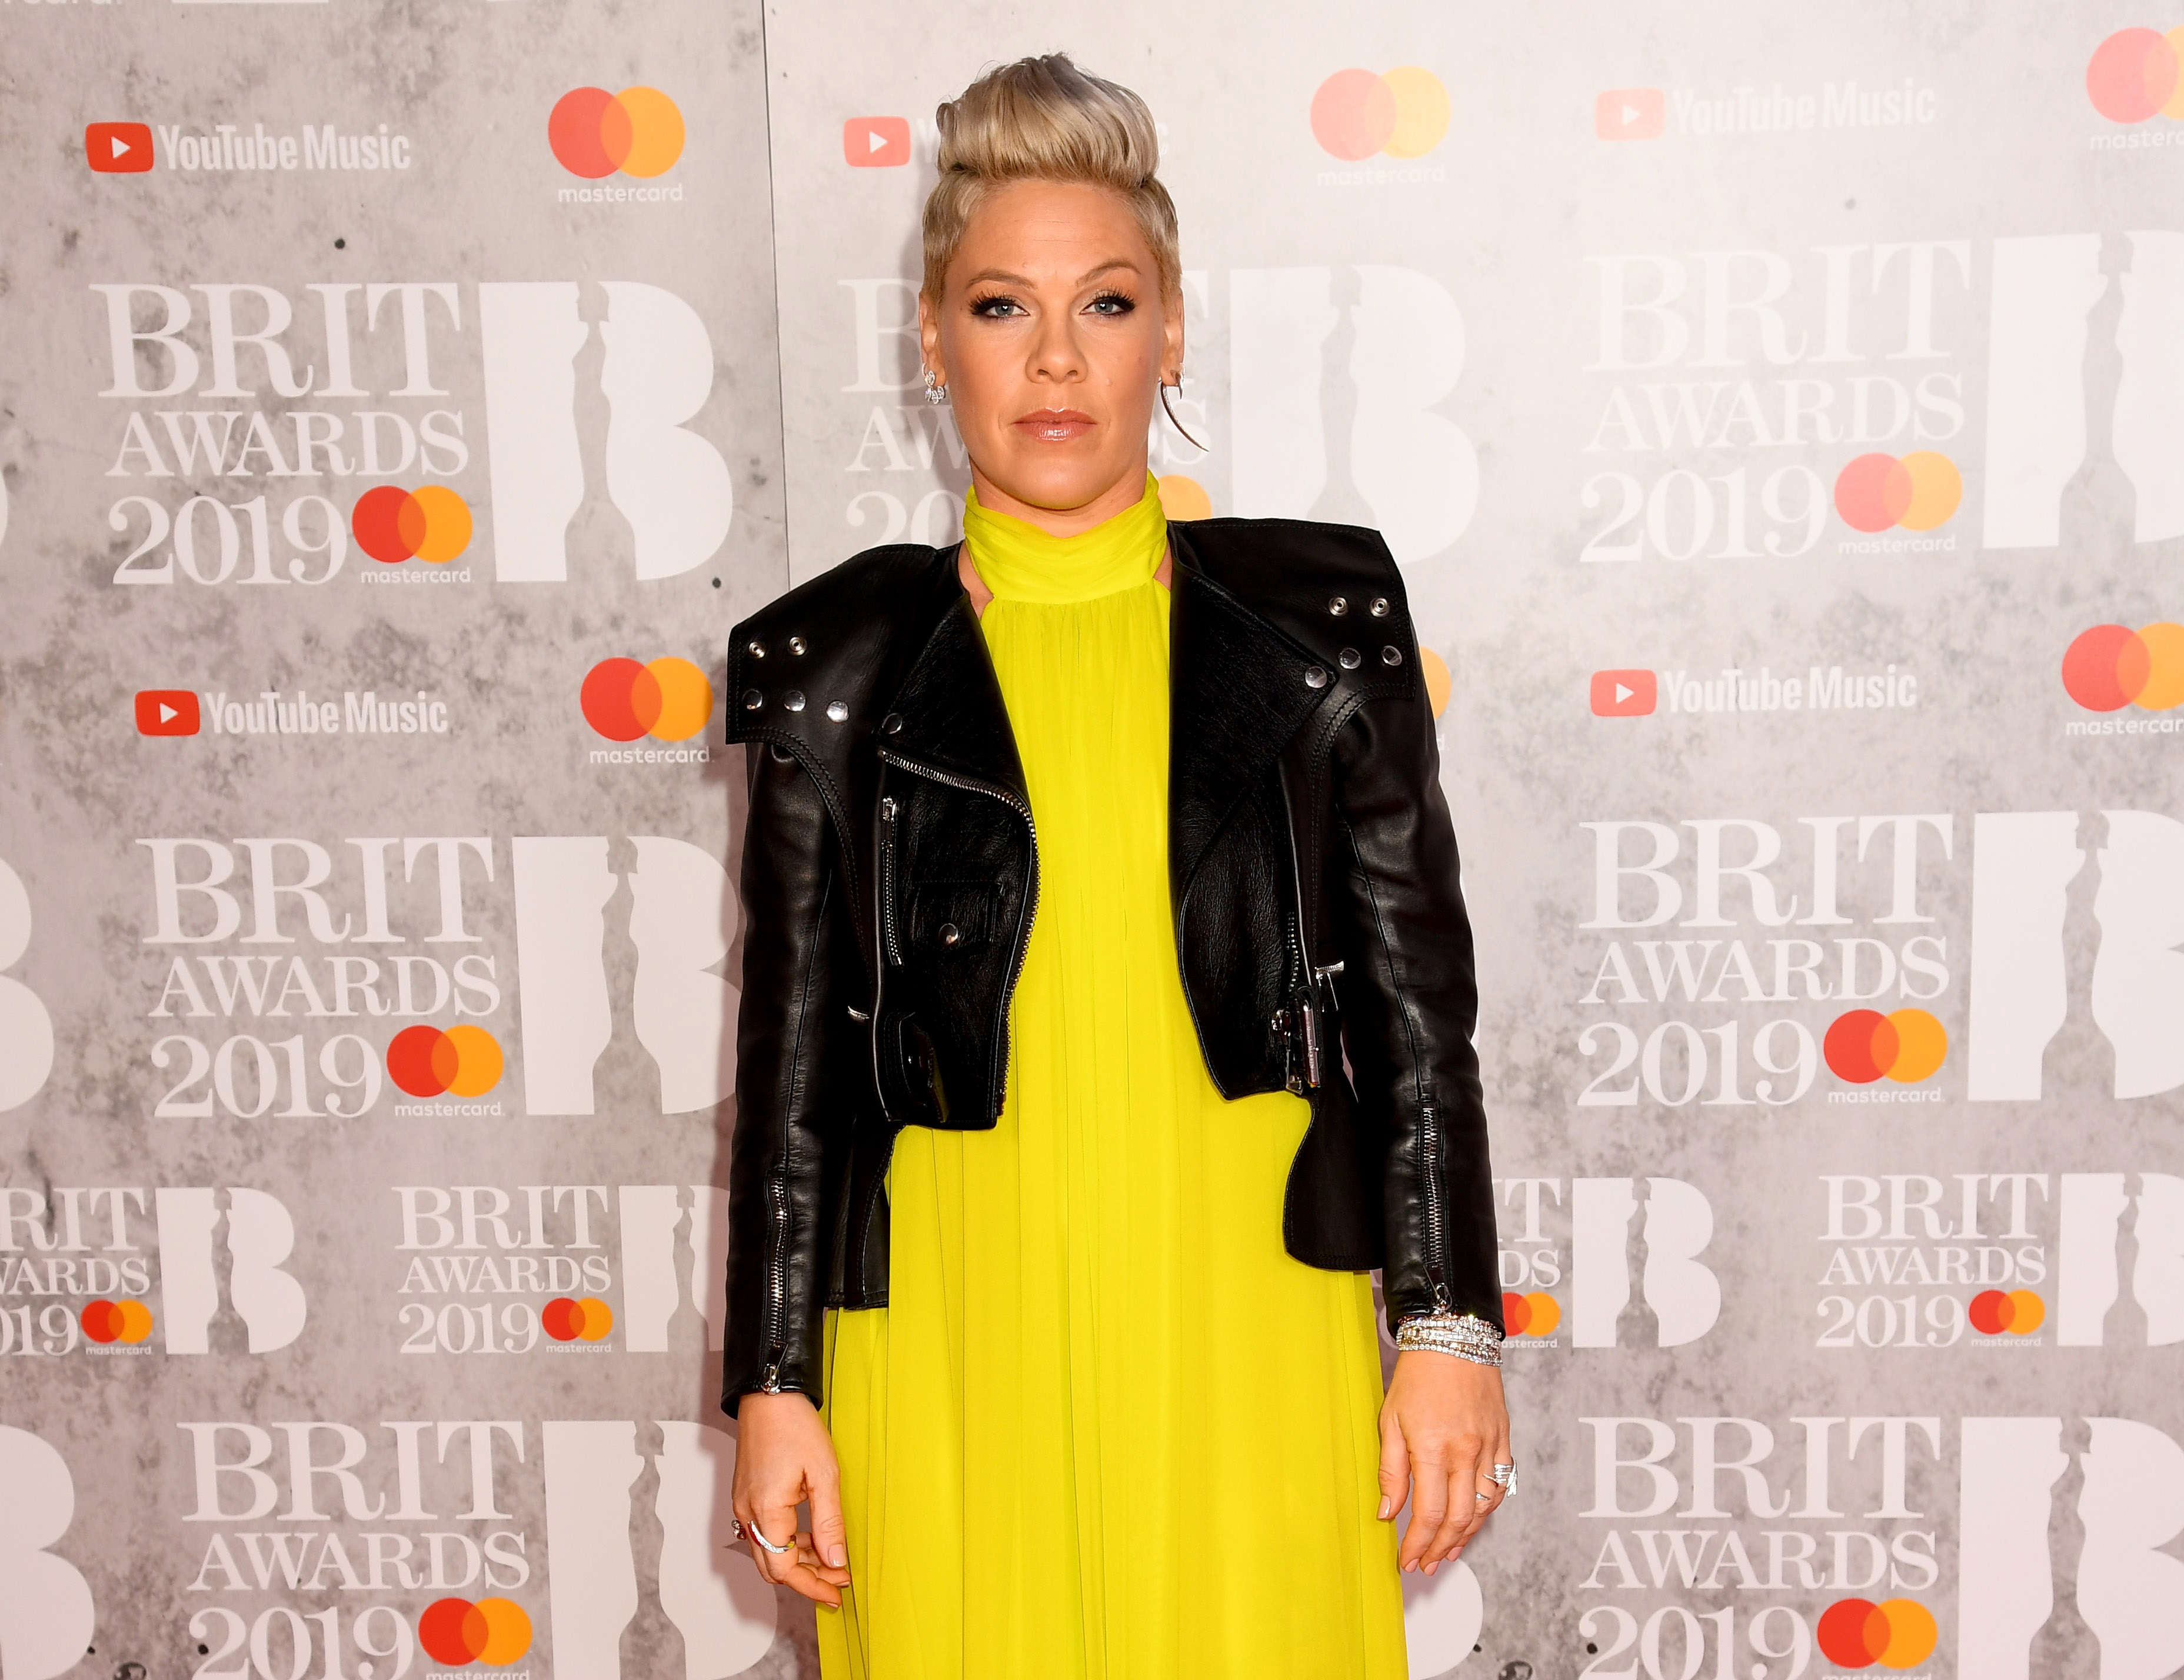 Slide 7 of 11: LONDON, ENGLAND - FEBRUARY 20: (EDITORIAL USE ONLY) P!nk attends The BRIT Awards 2019 held at The O2 Arena on February 20, 2019 in London, England. (Photo by Dave J Hogan/Getty Images)